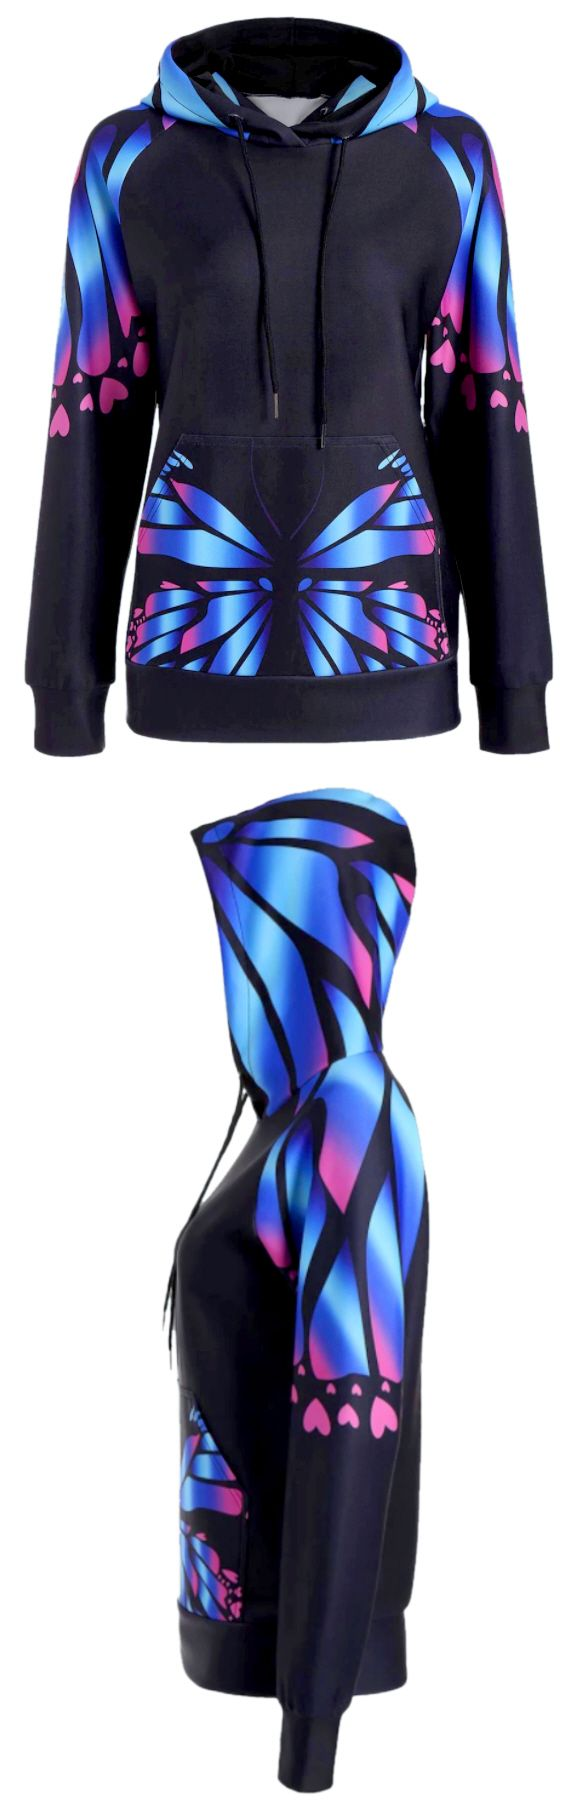 innovative cute rave outfit 11